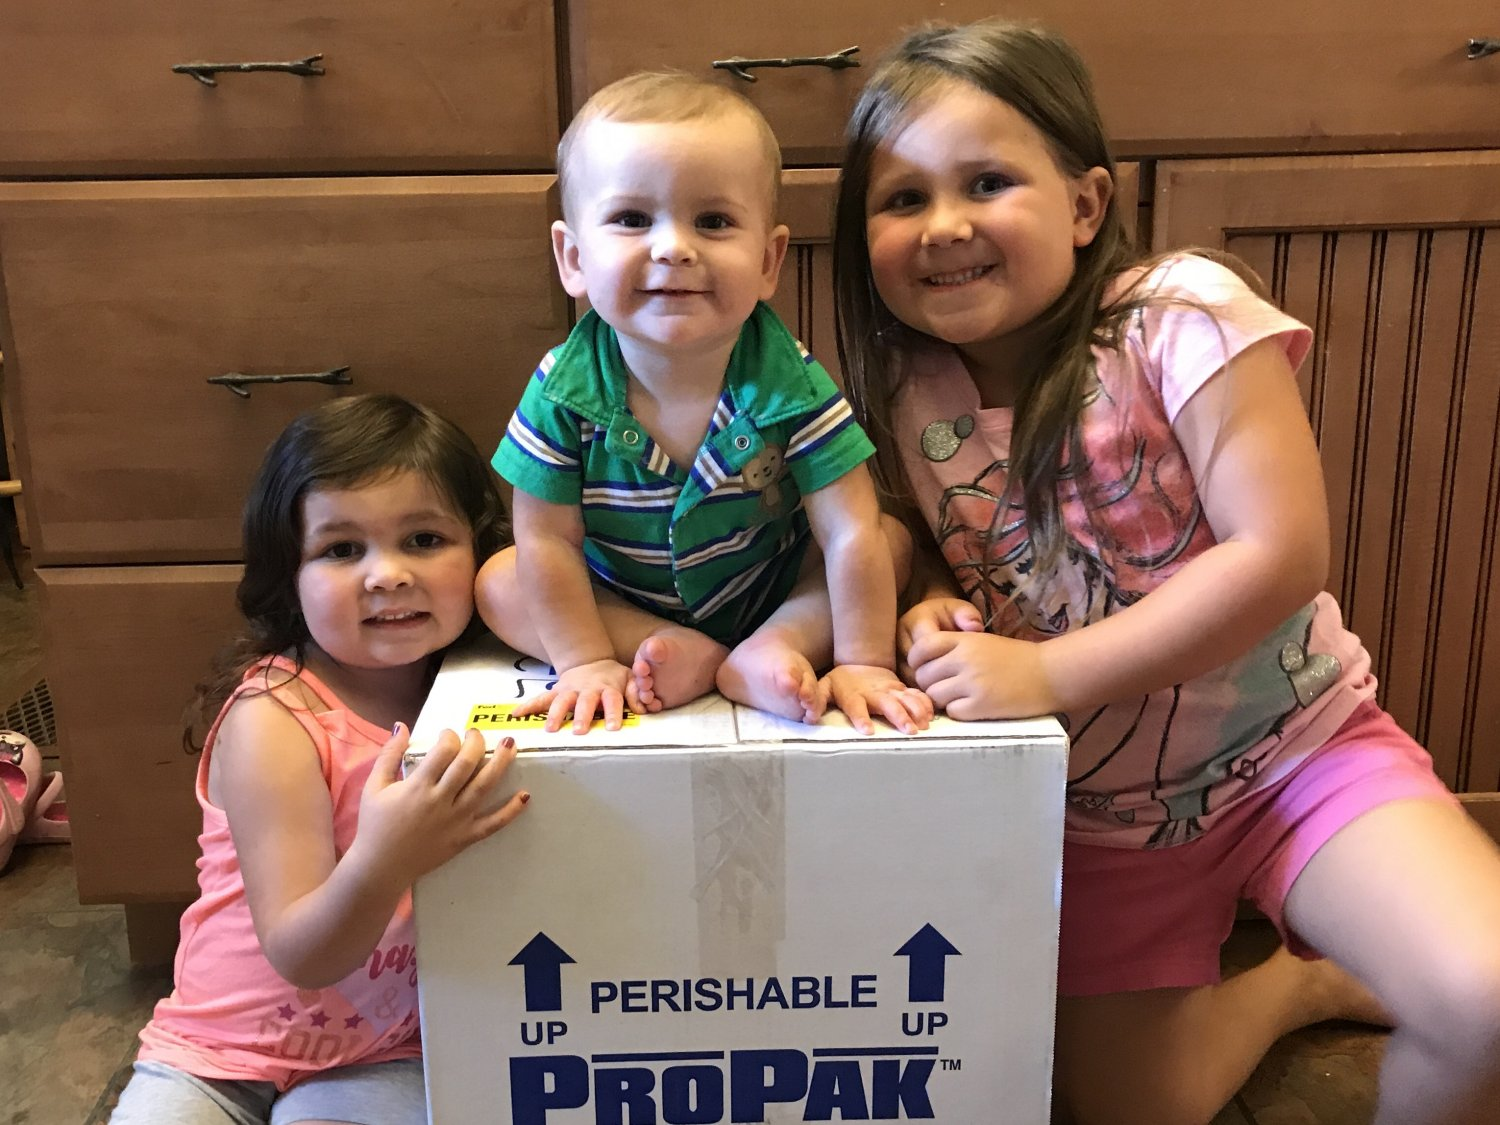 Young girl, toddler girl, and baby boy sit around a box